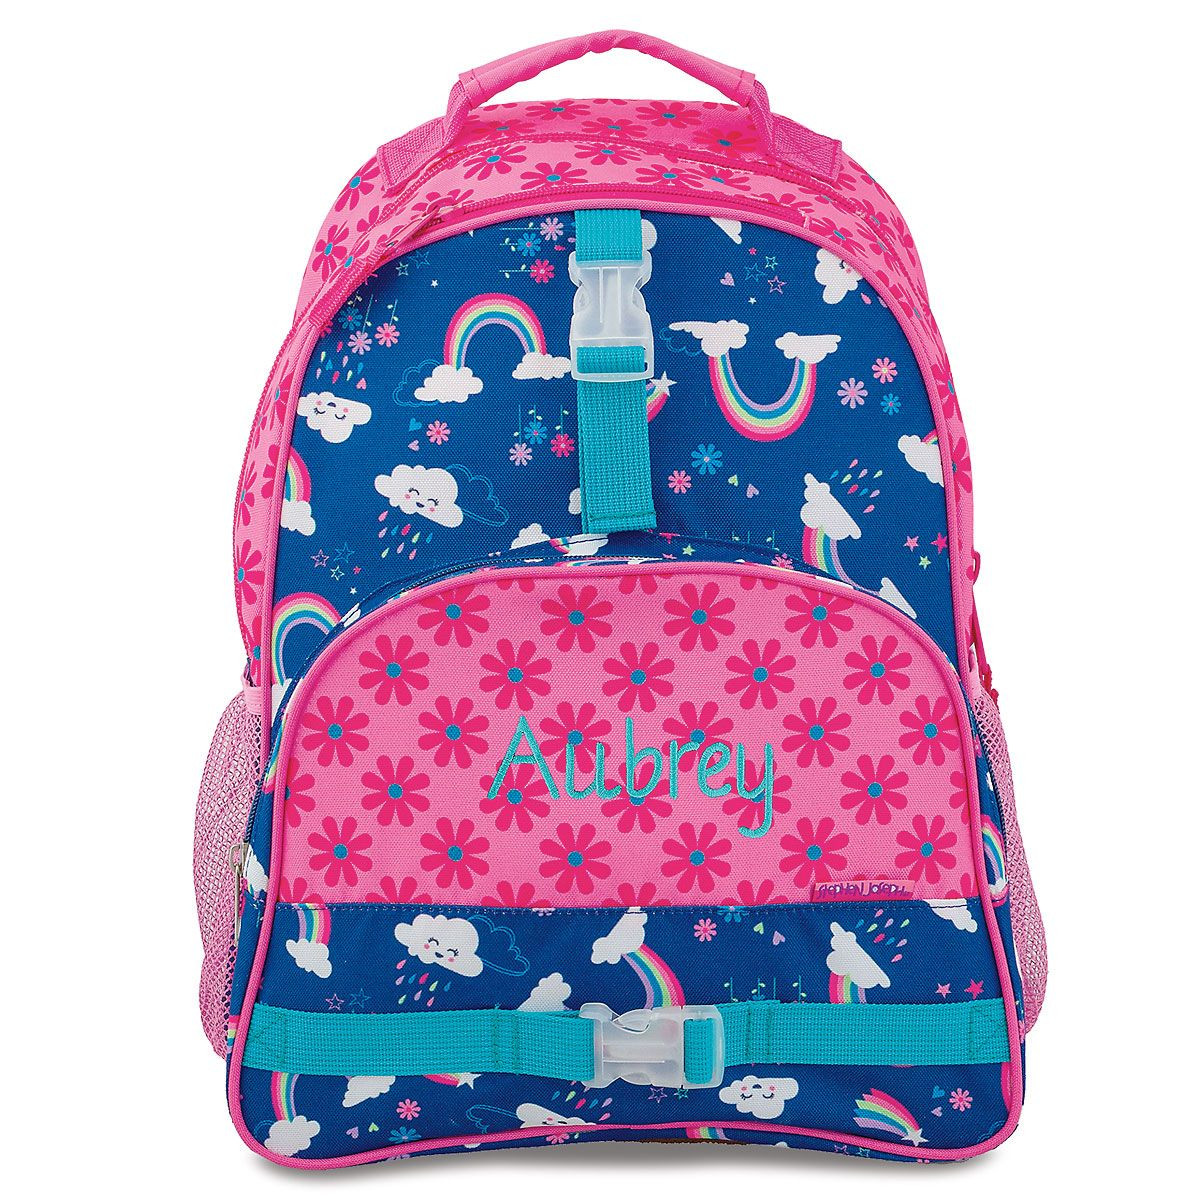 Rainbow Personalized Backpack by Stephen Joseph®